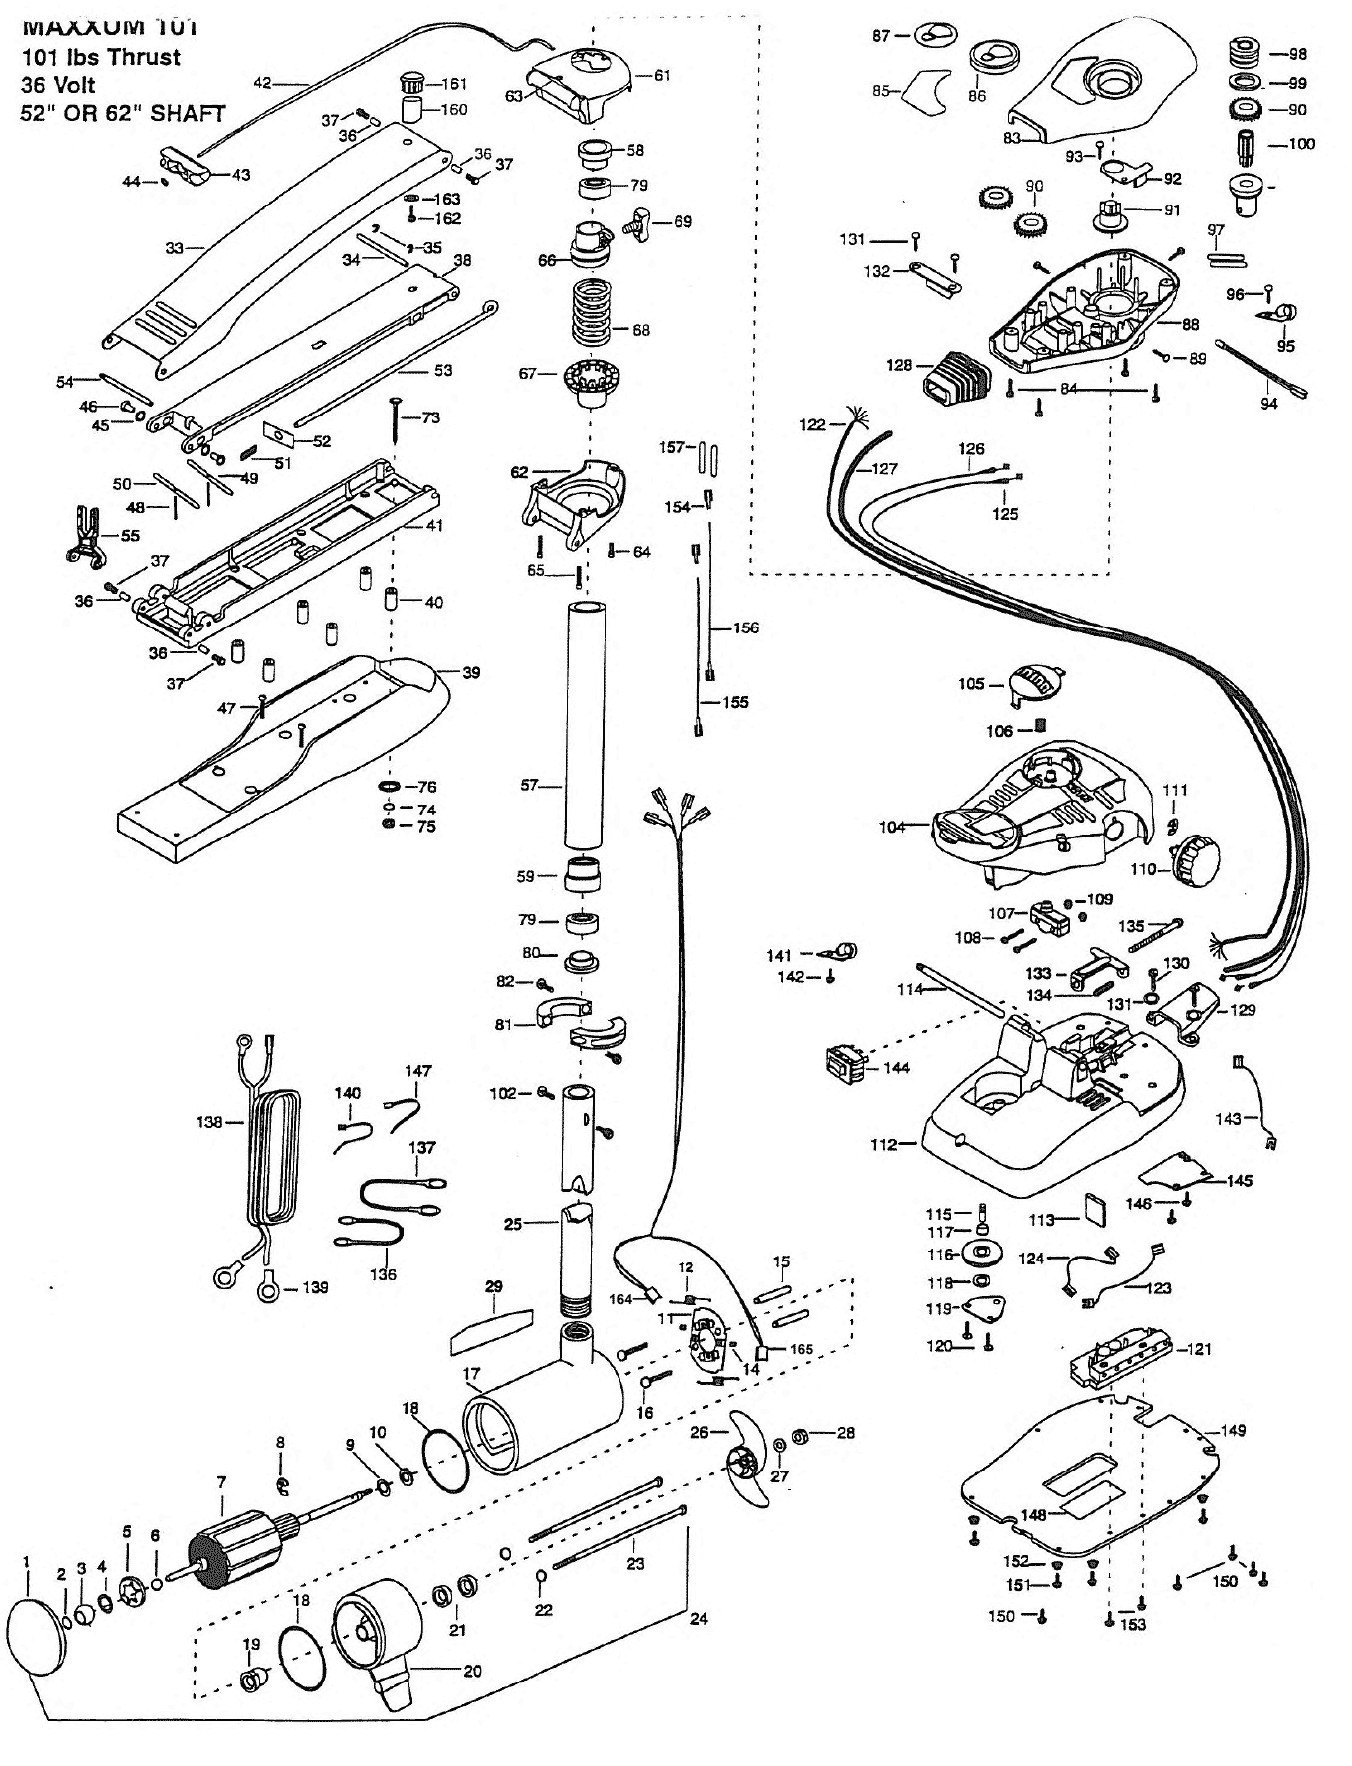 Minn Kota Trolling Motor Diagram Pictures To Pin On